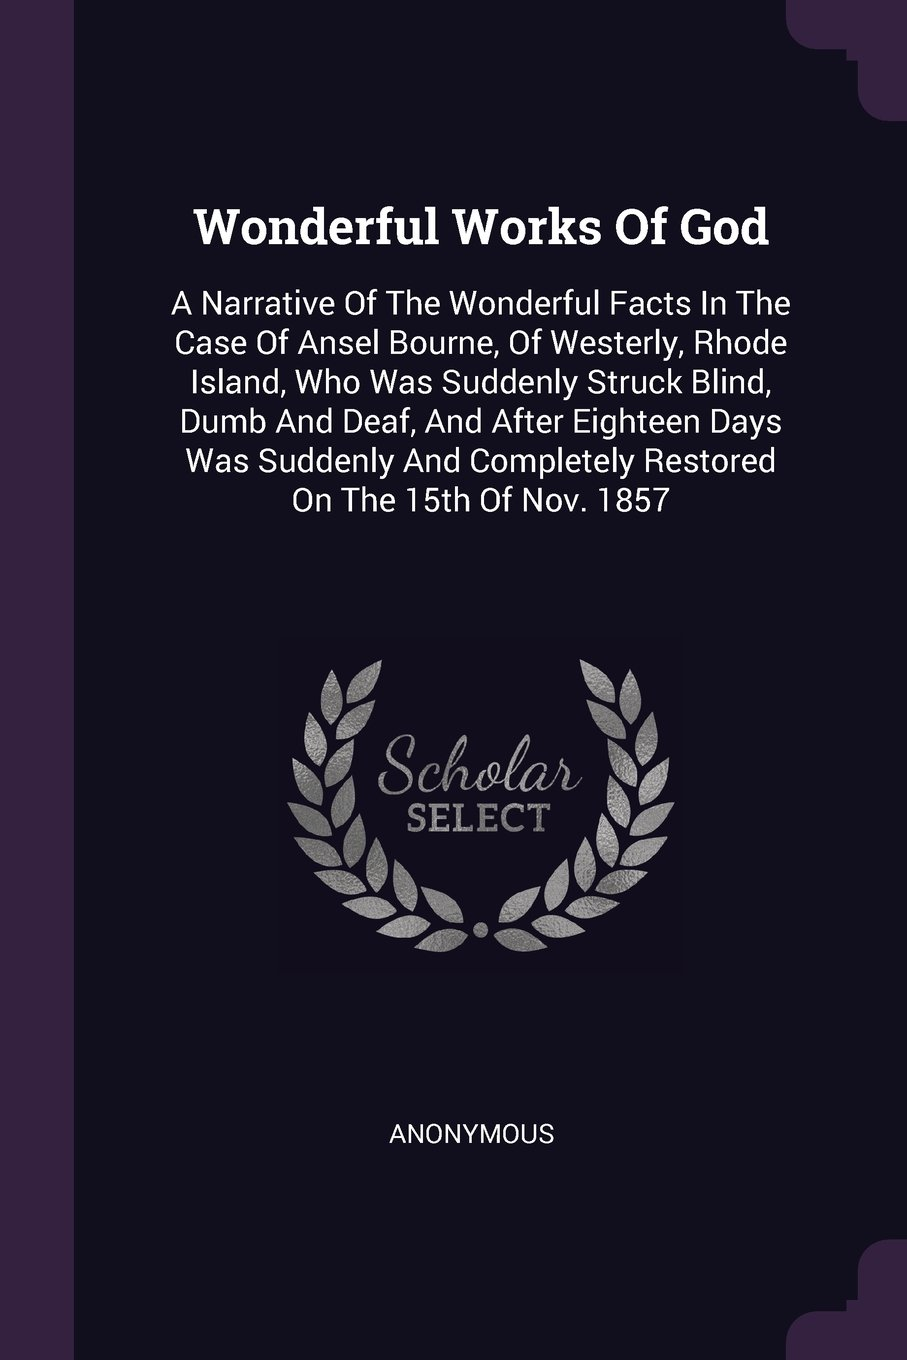 Download Wonderful Works Of God: A Narrative Of The Wonderful Facts In The Case Of Ansel Bourne, Of Westerly, Rhode Island, Who Was Suddenly Struck Blind, Dumb ... Completely Restored On The 15th Of Nov. 1857 pdf epub